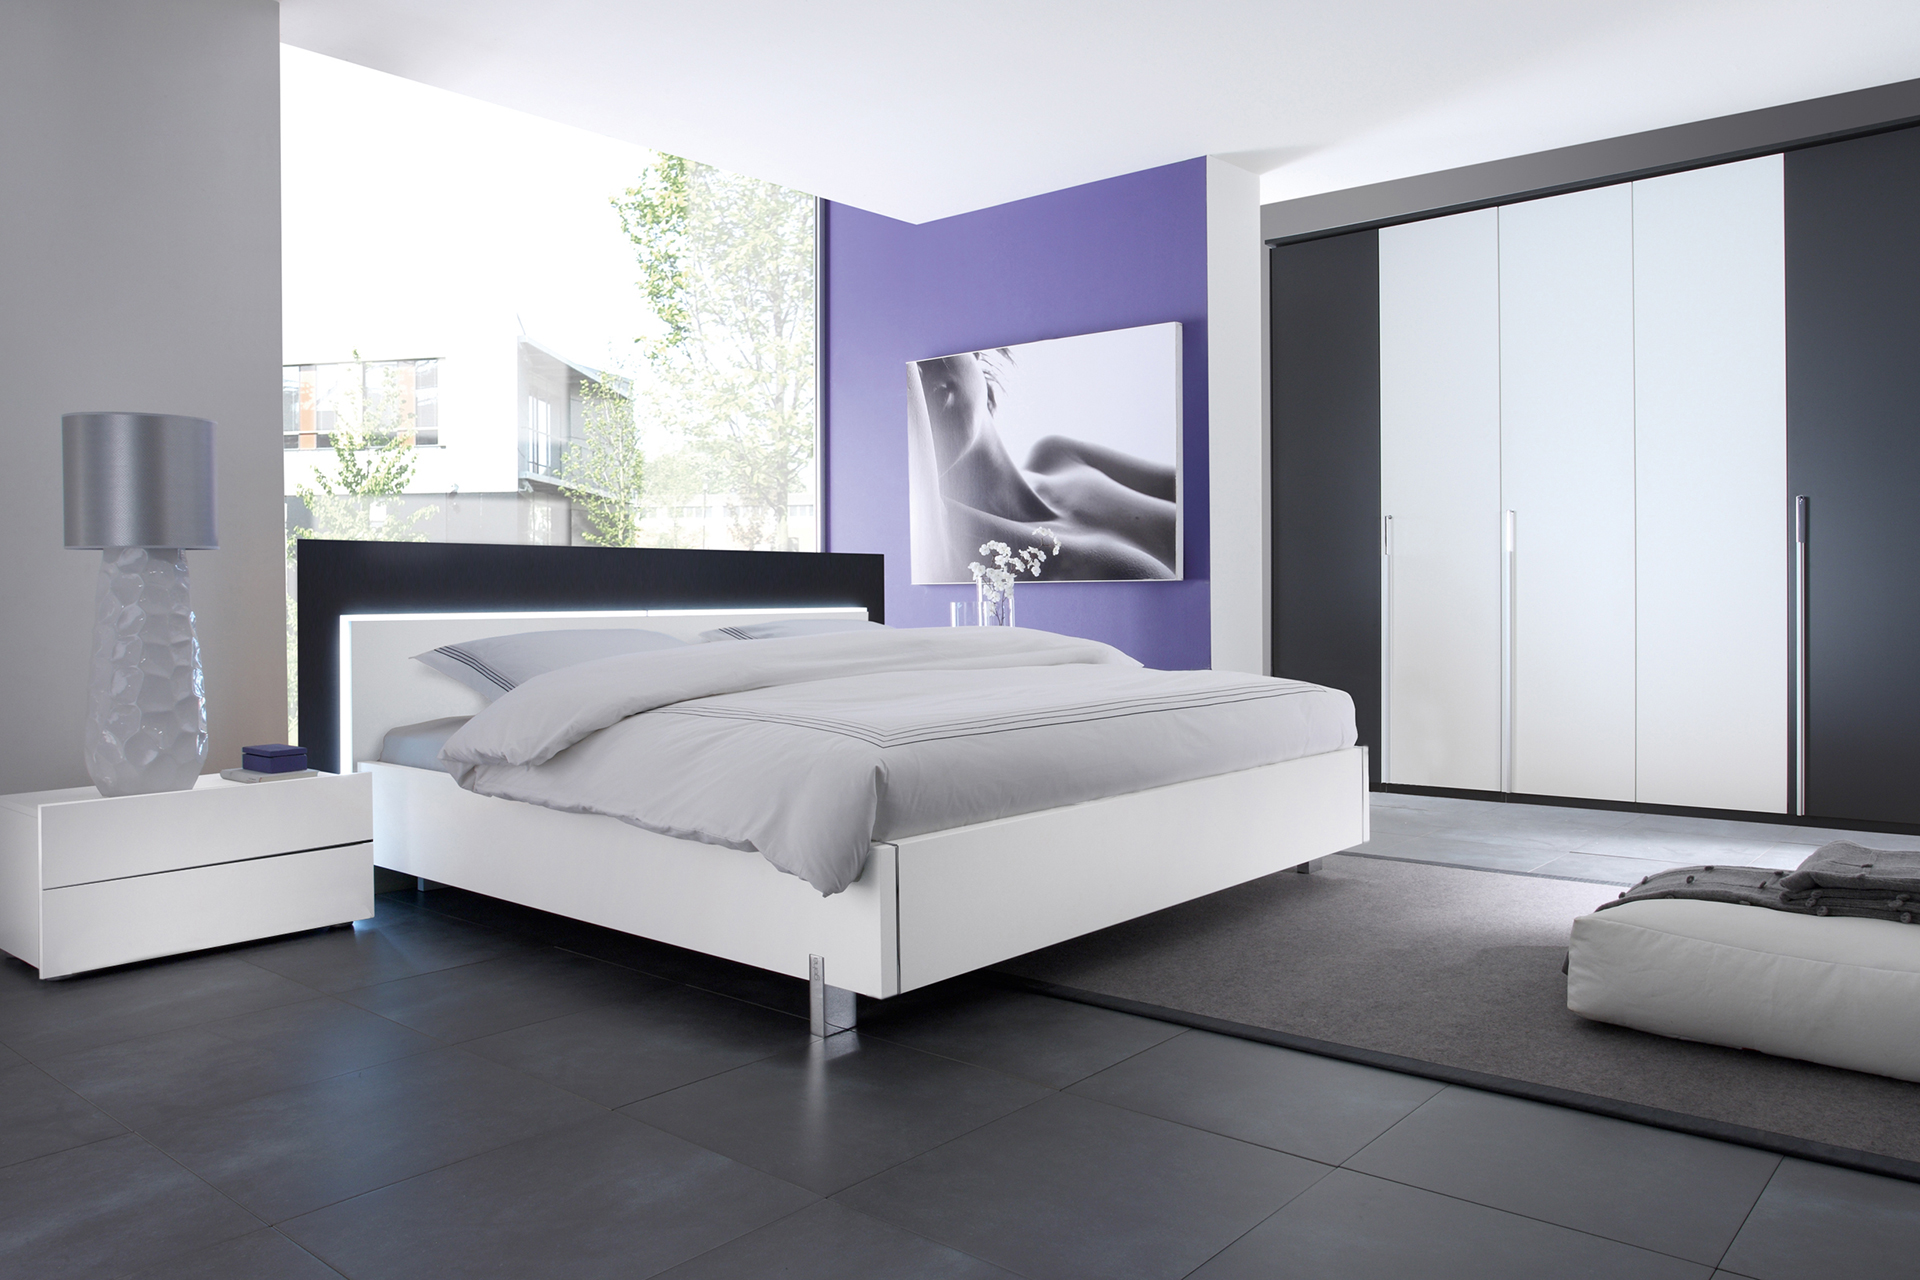 Bedroom-MILANO_16-Geha